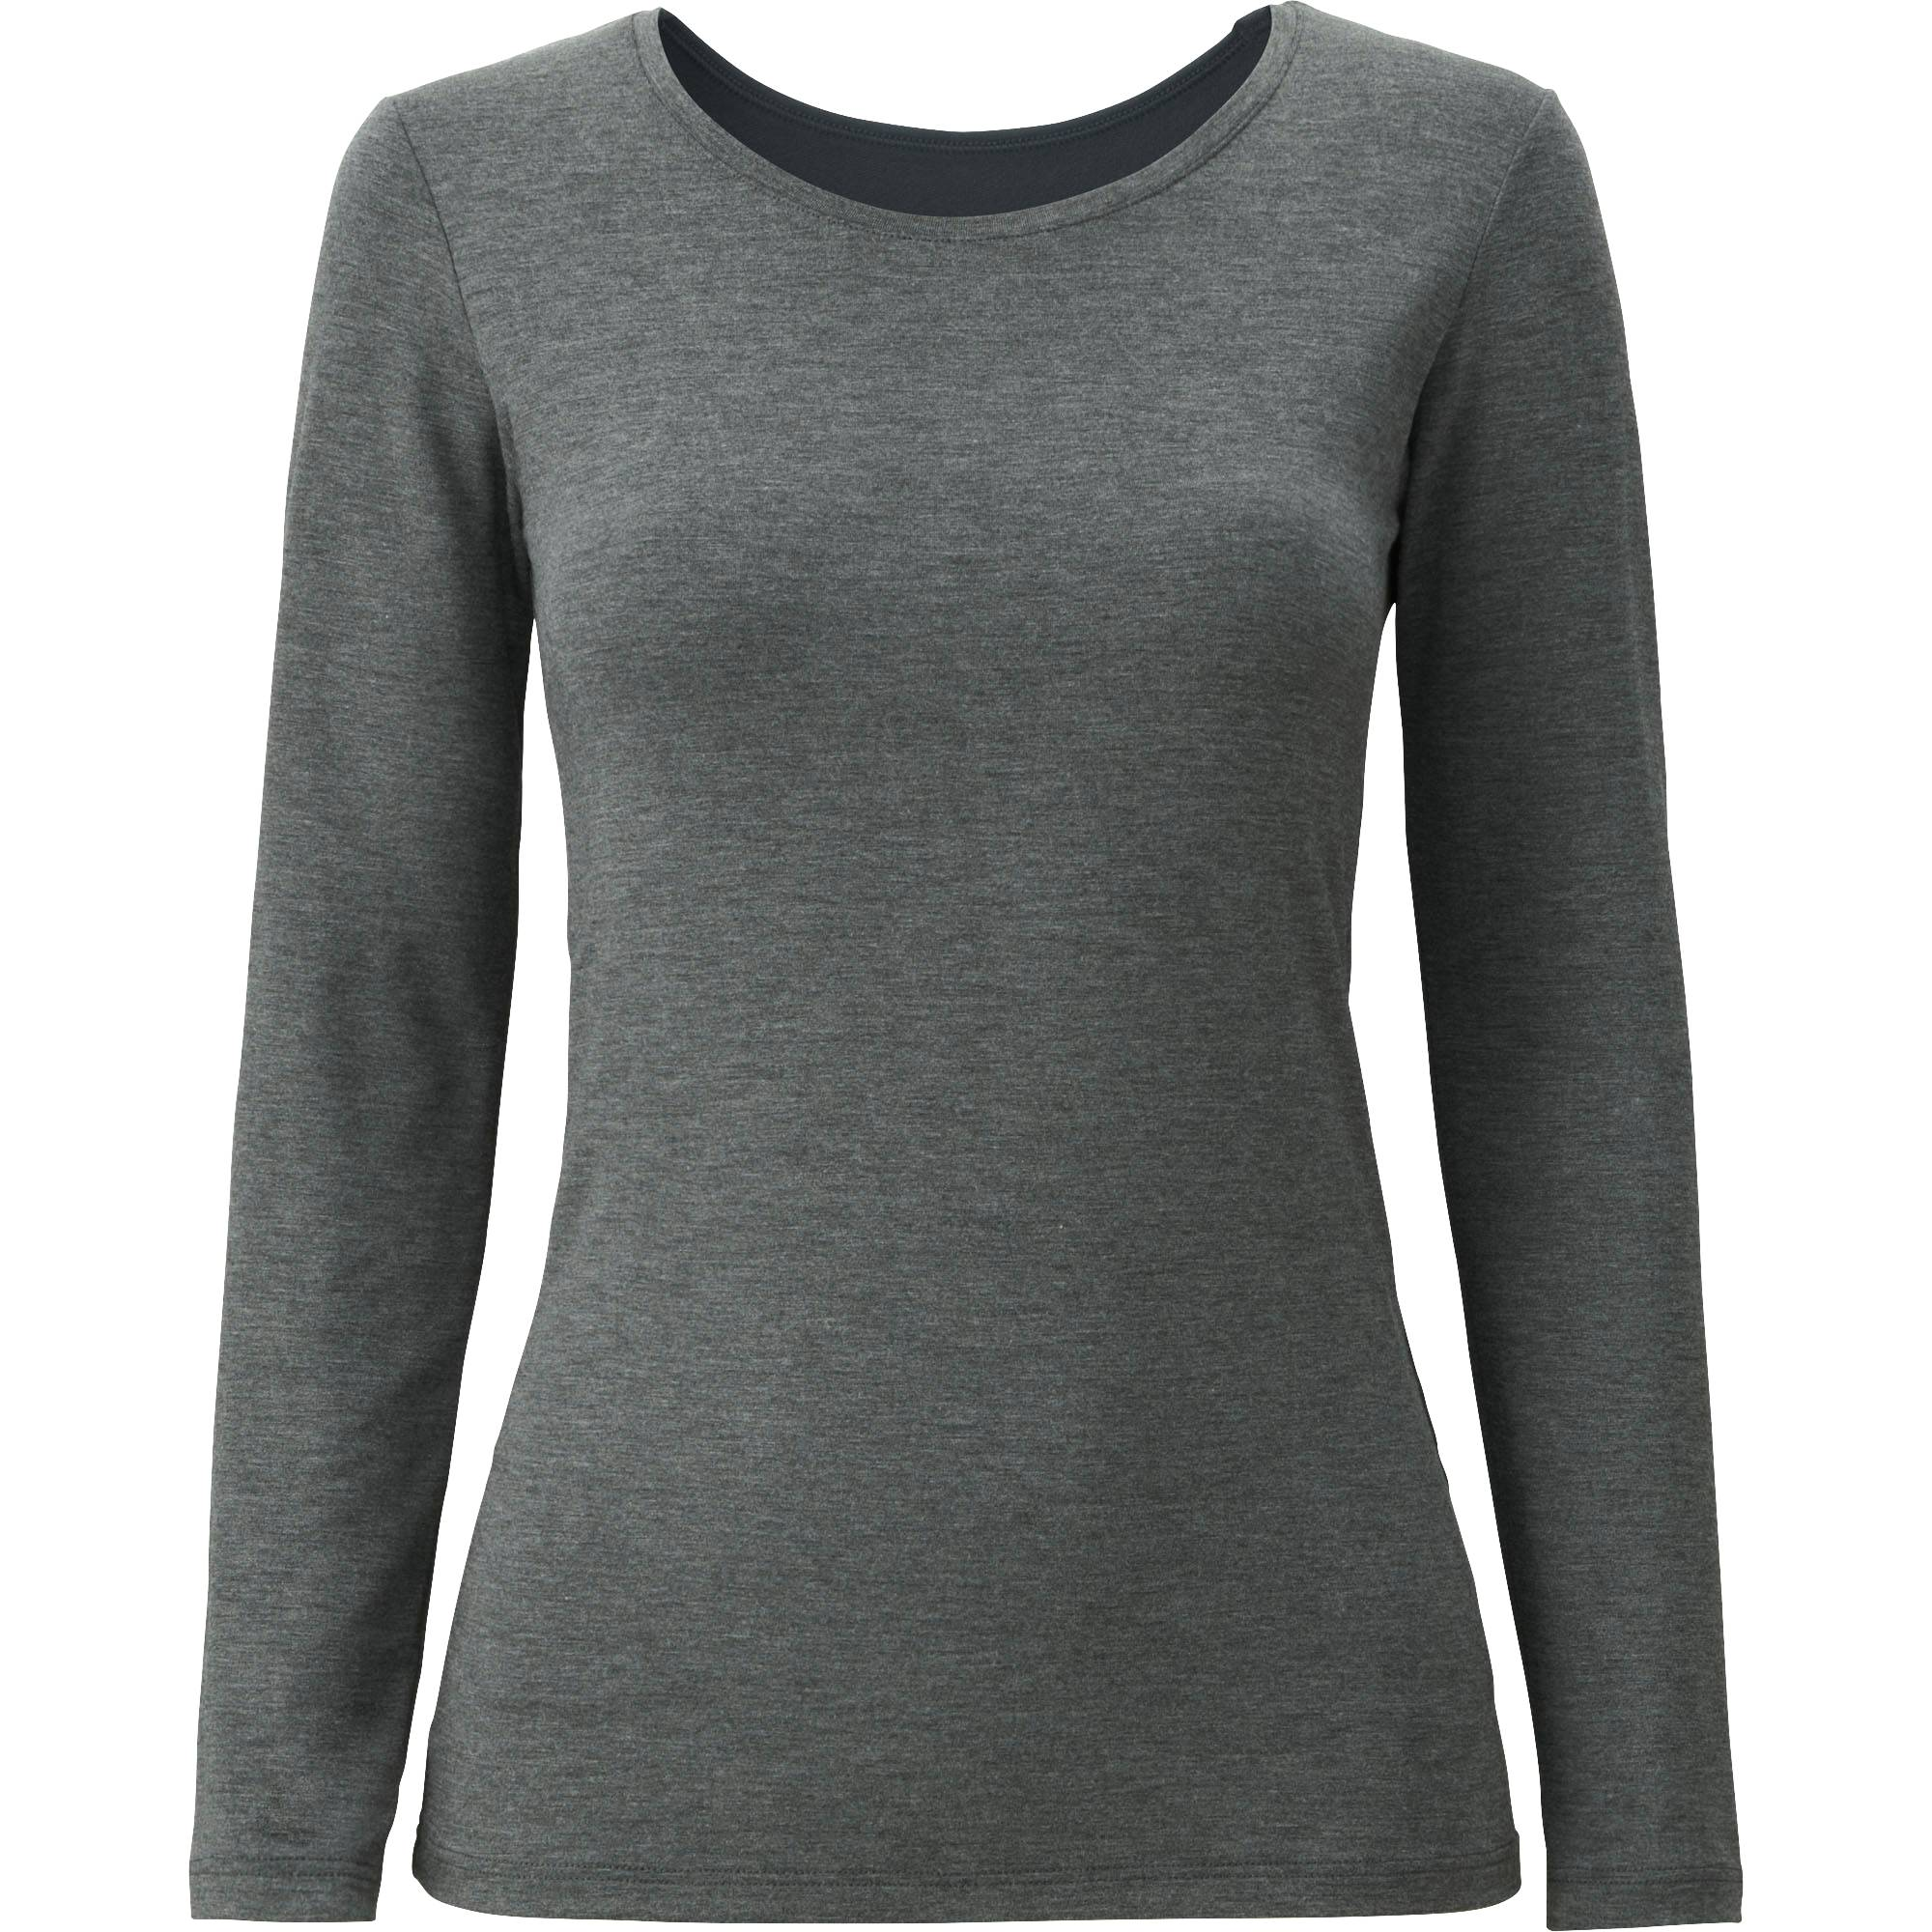 WOMEN HEATTECH EXTRA WARM CREW NECK T-SHIRT | UNIQLO US